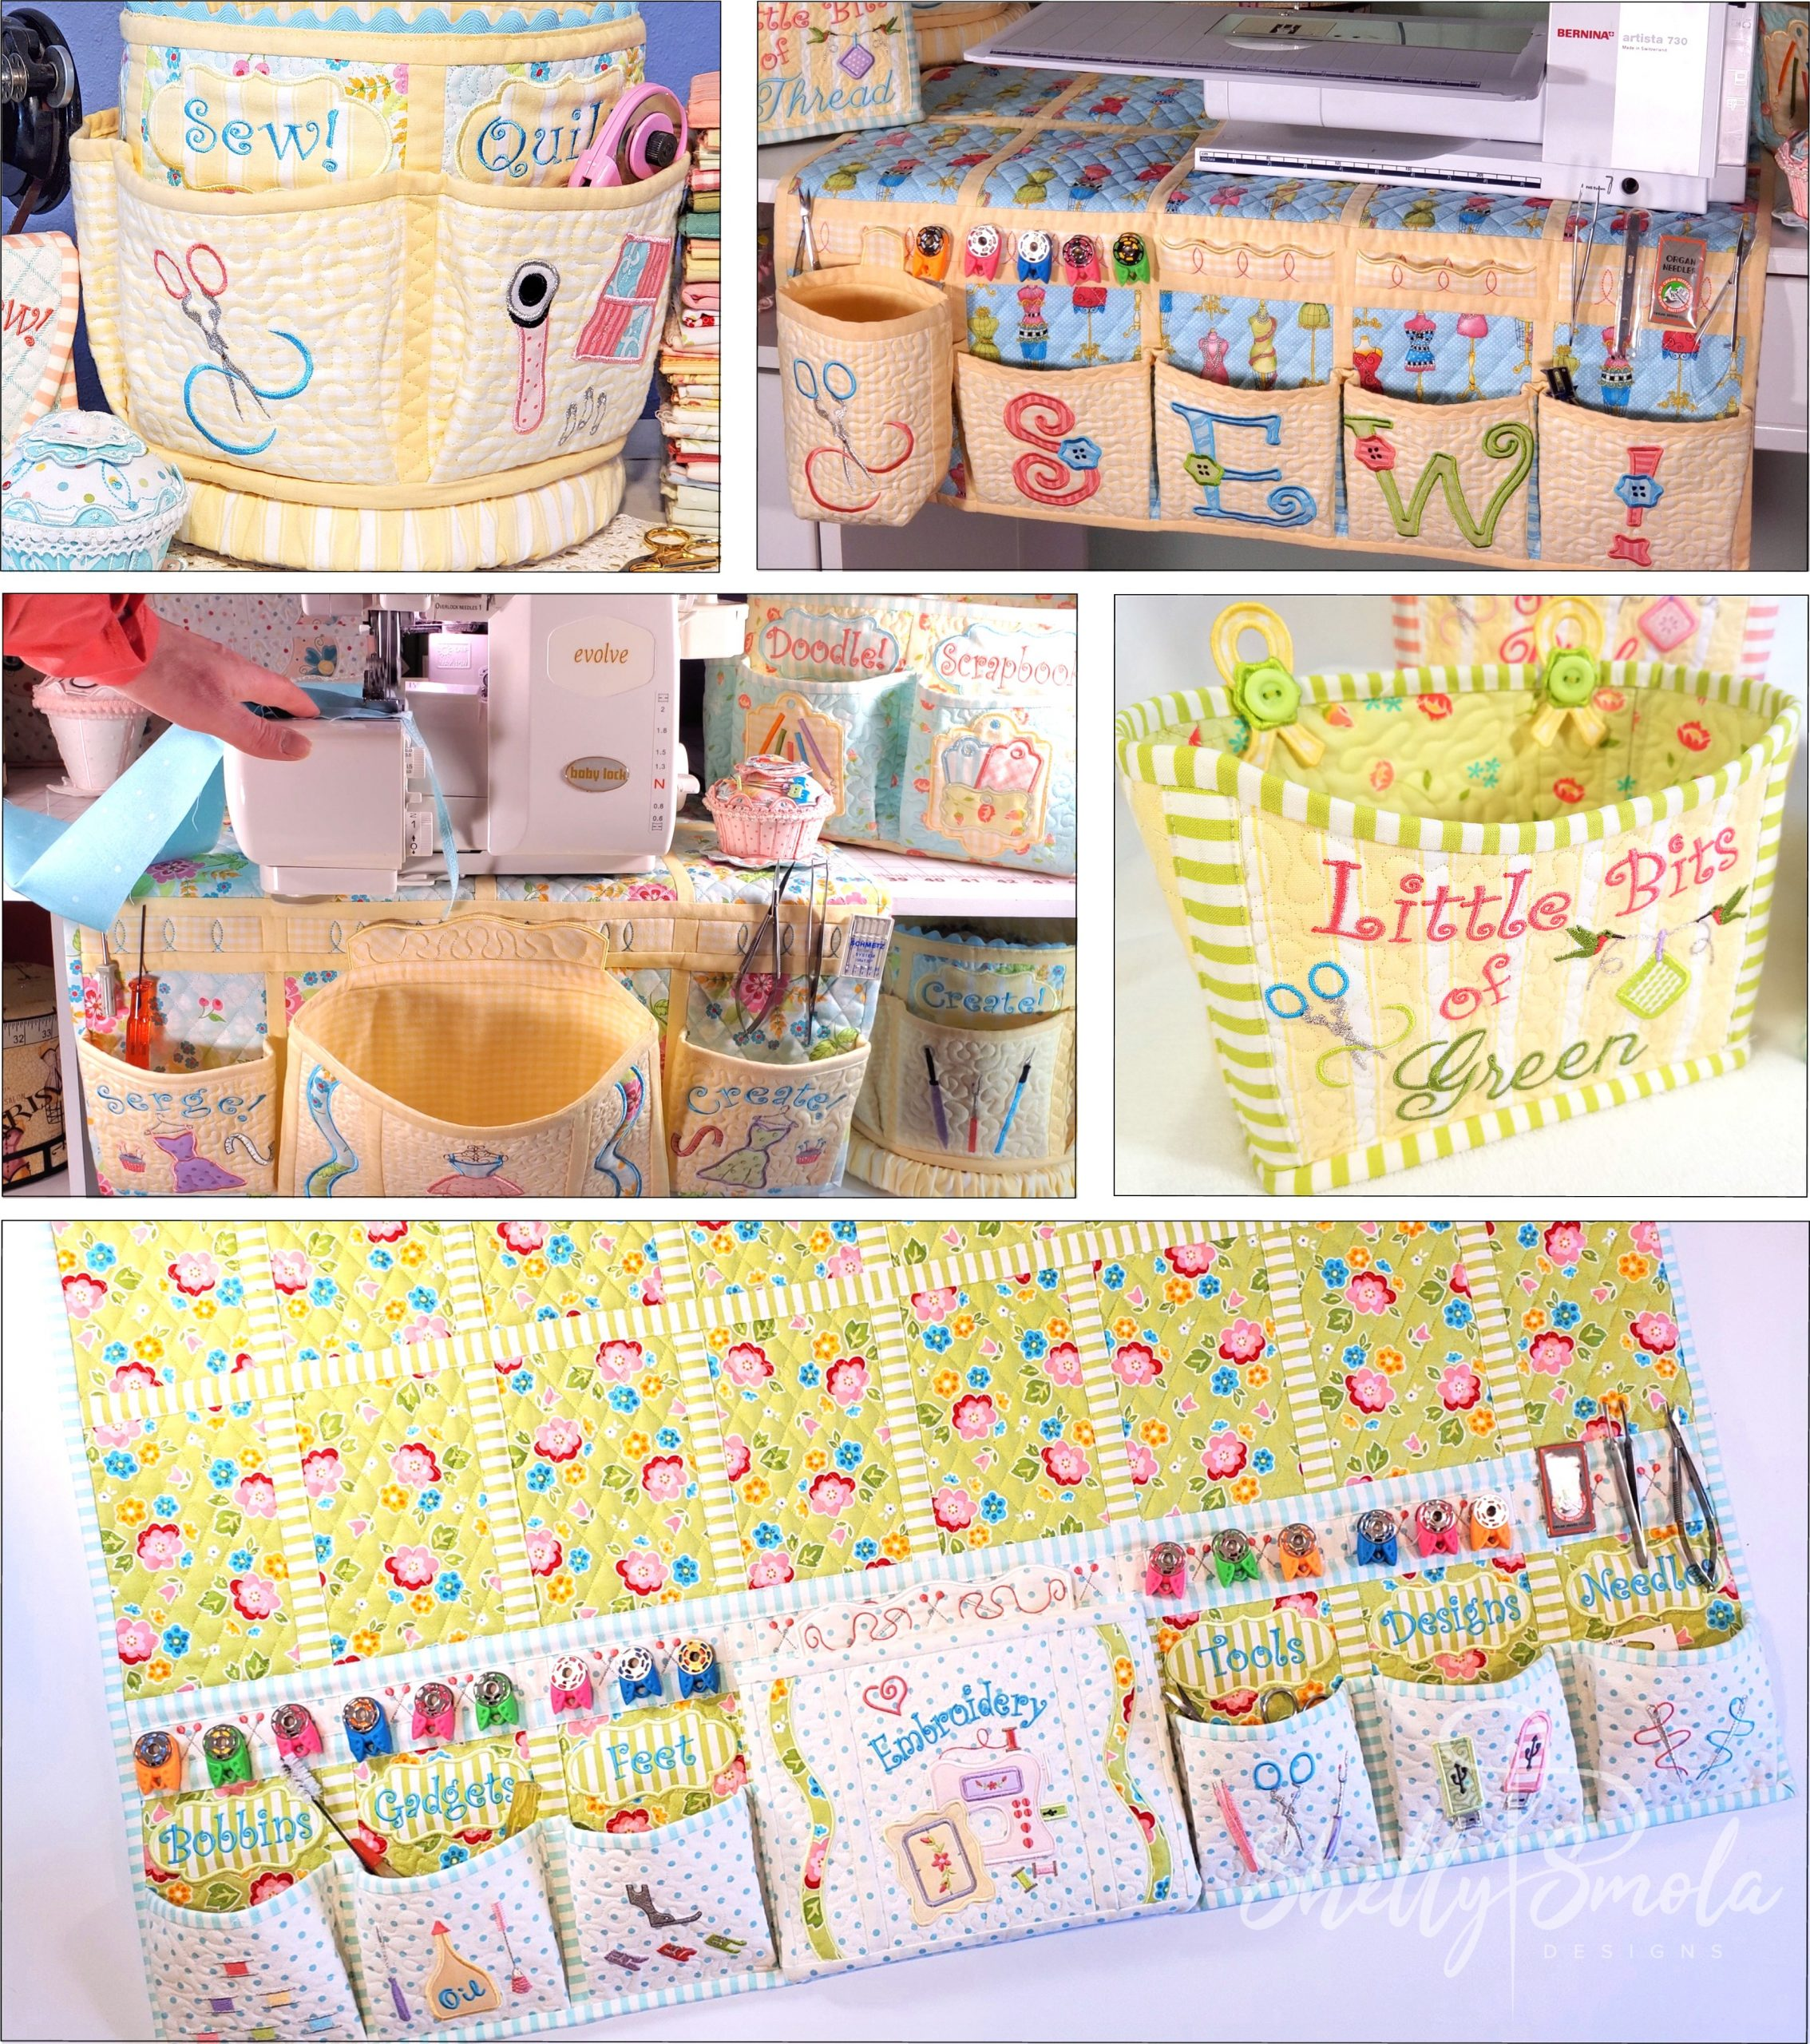 Sewing Studio Special by Shelly Smola